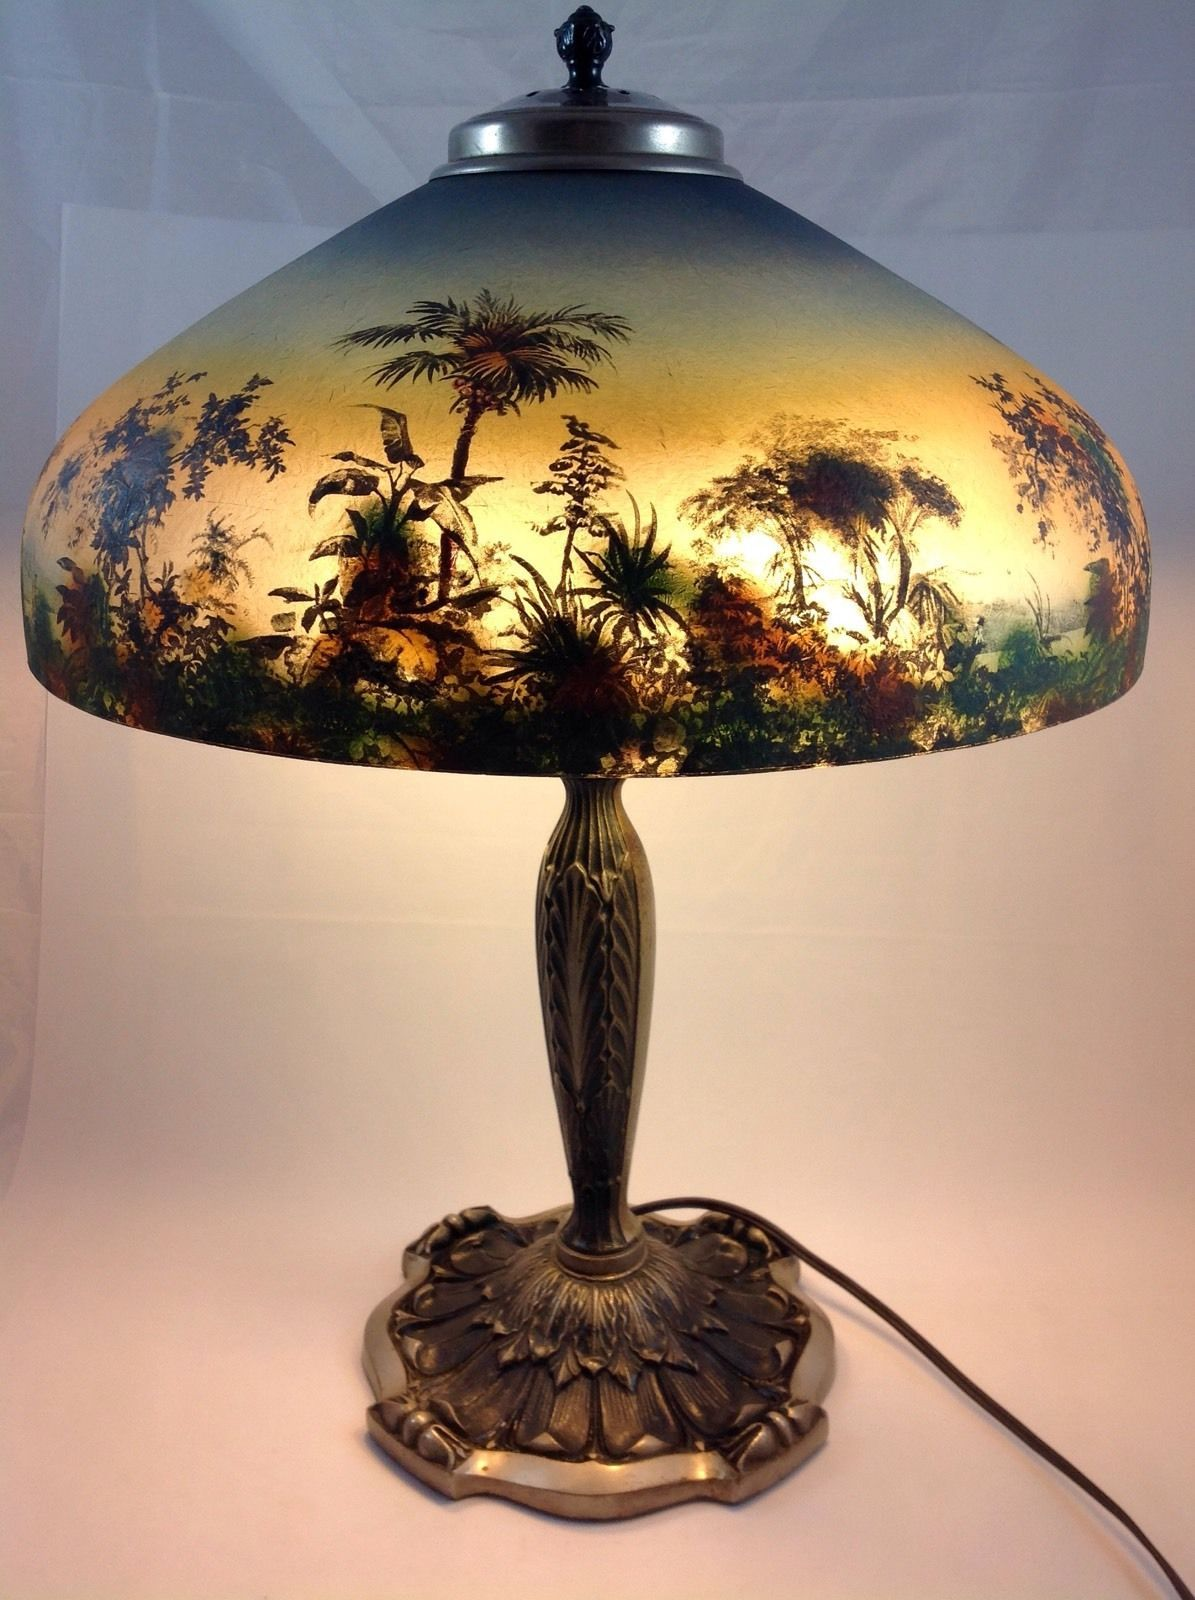 Painting Glass Lamps Offering A Fantastic Pittsburgh Reverse Painted Lamp With A